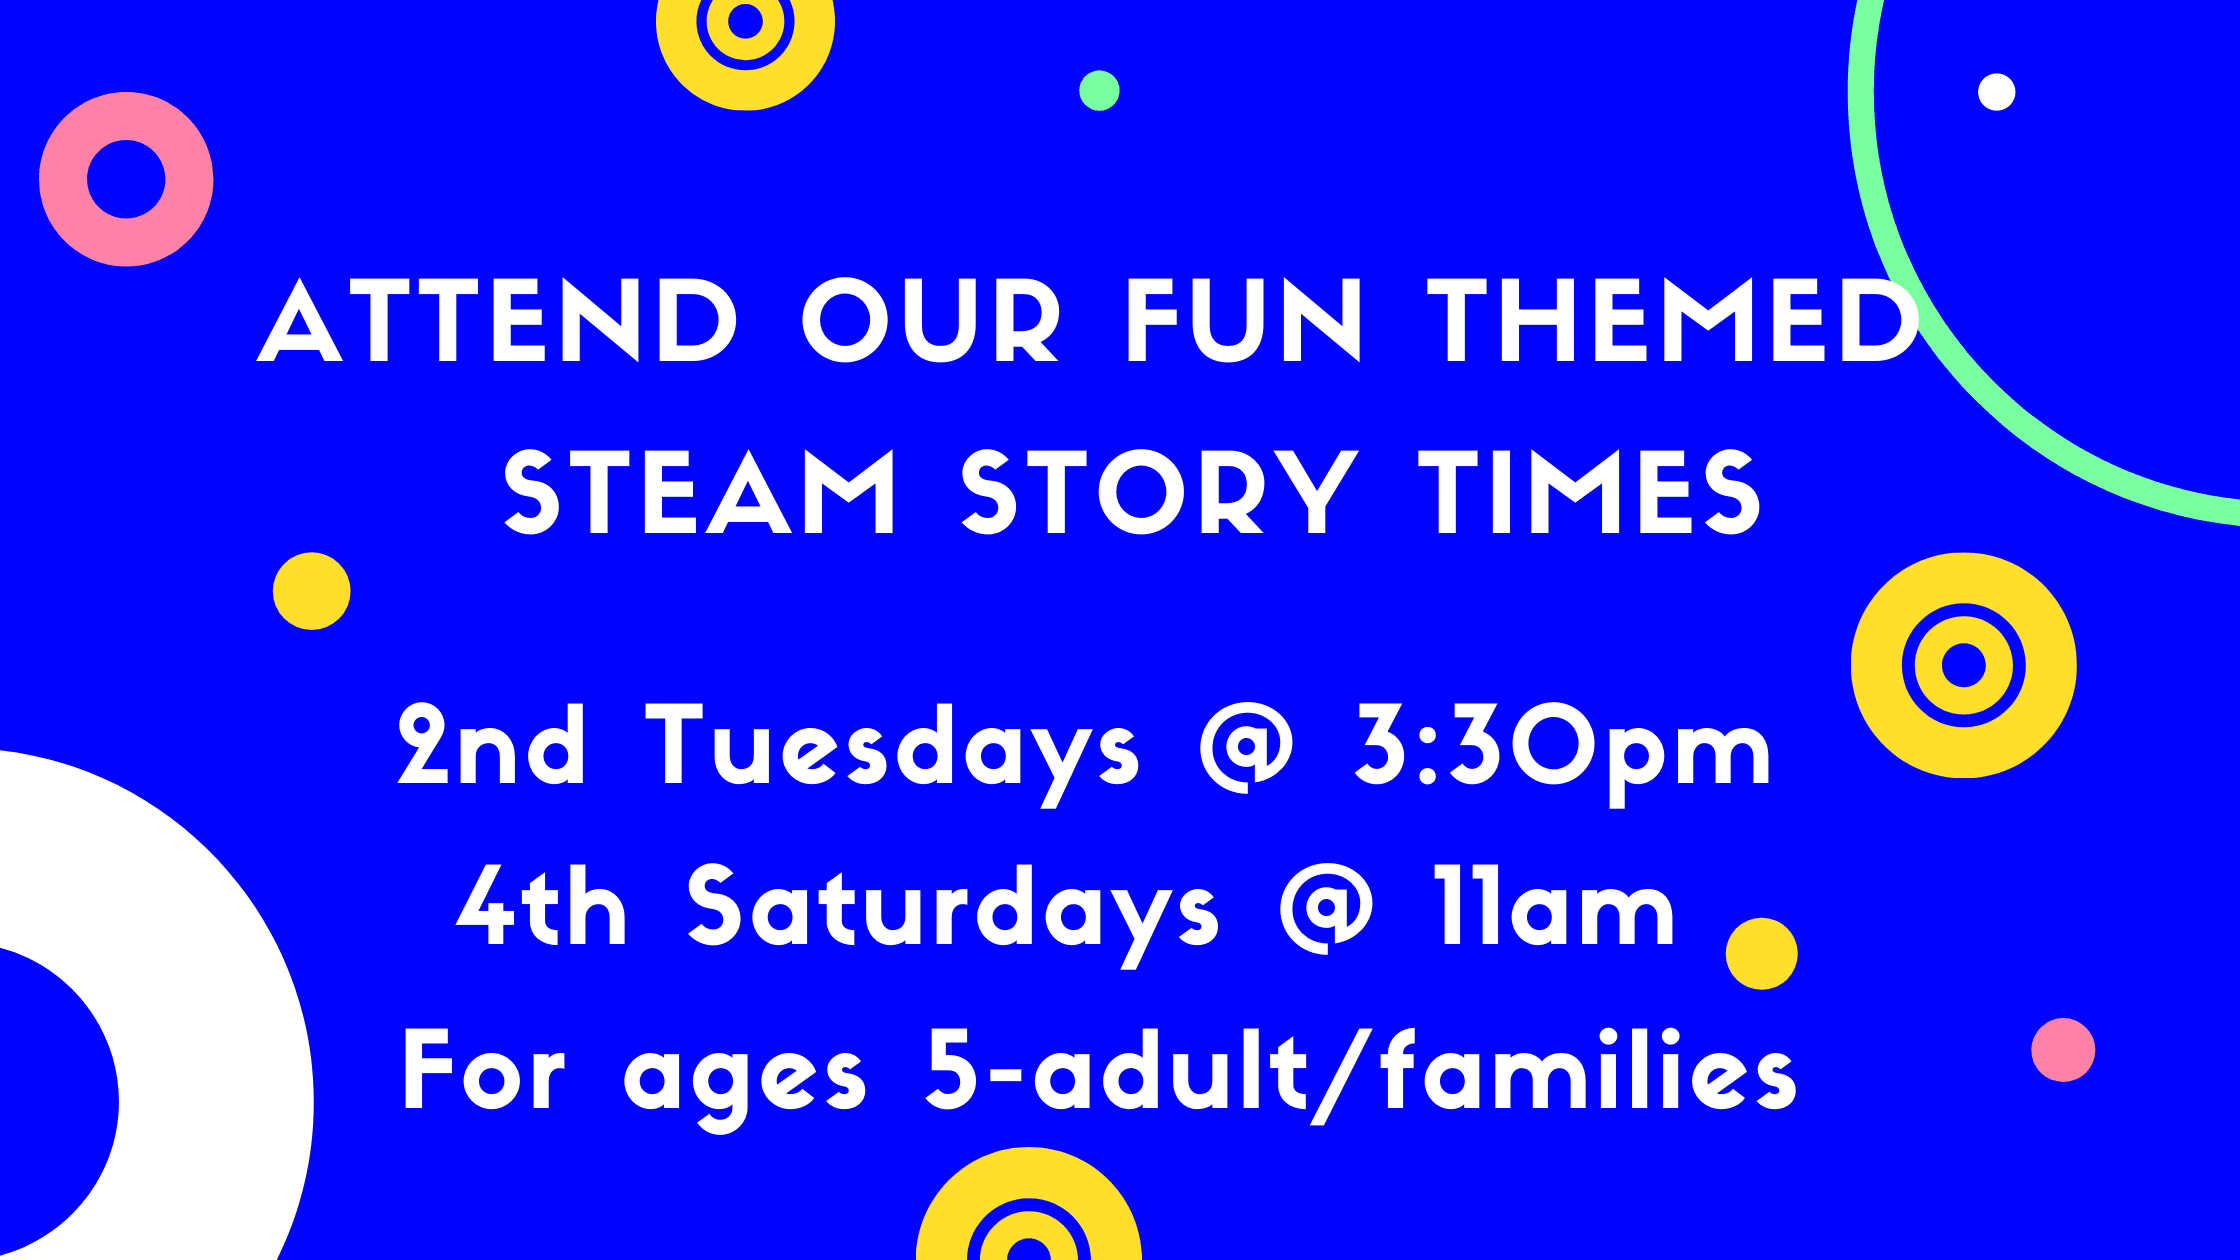 STEAM STORY TIMES